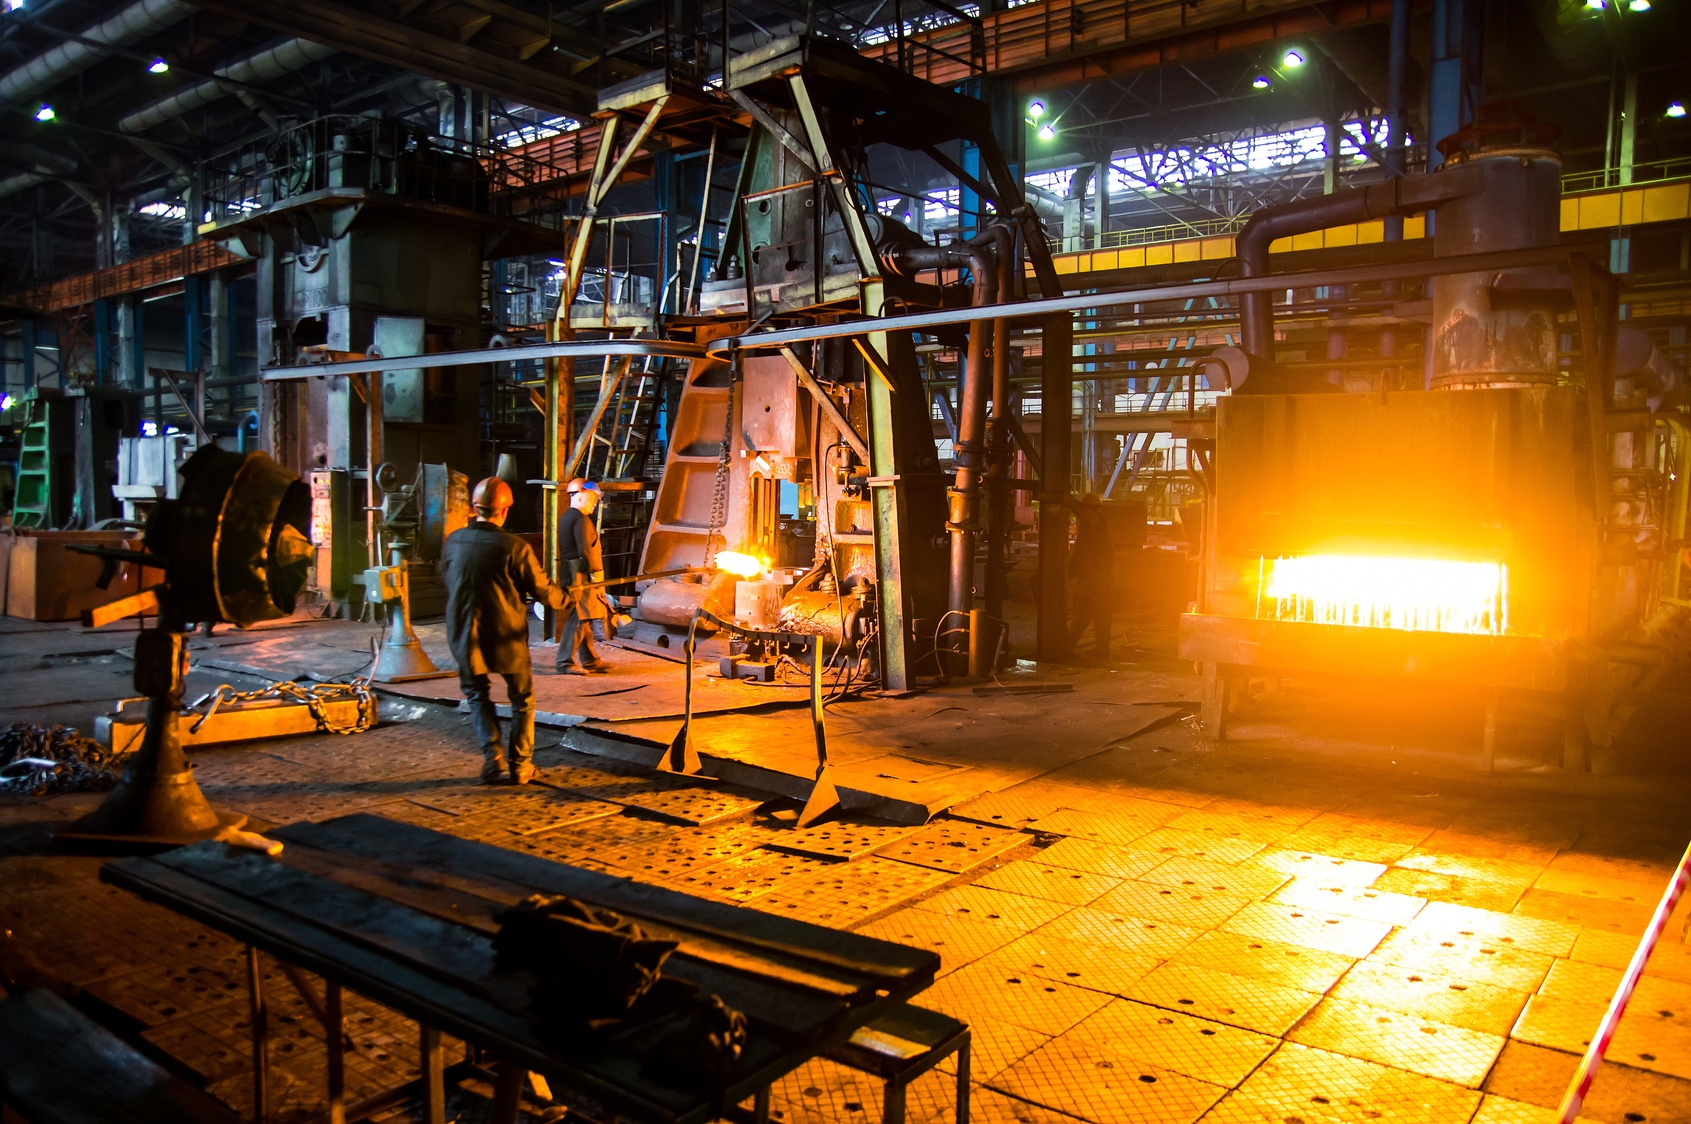 Some operations and processes are just too hot for even steel.